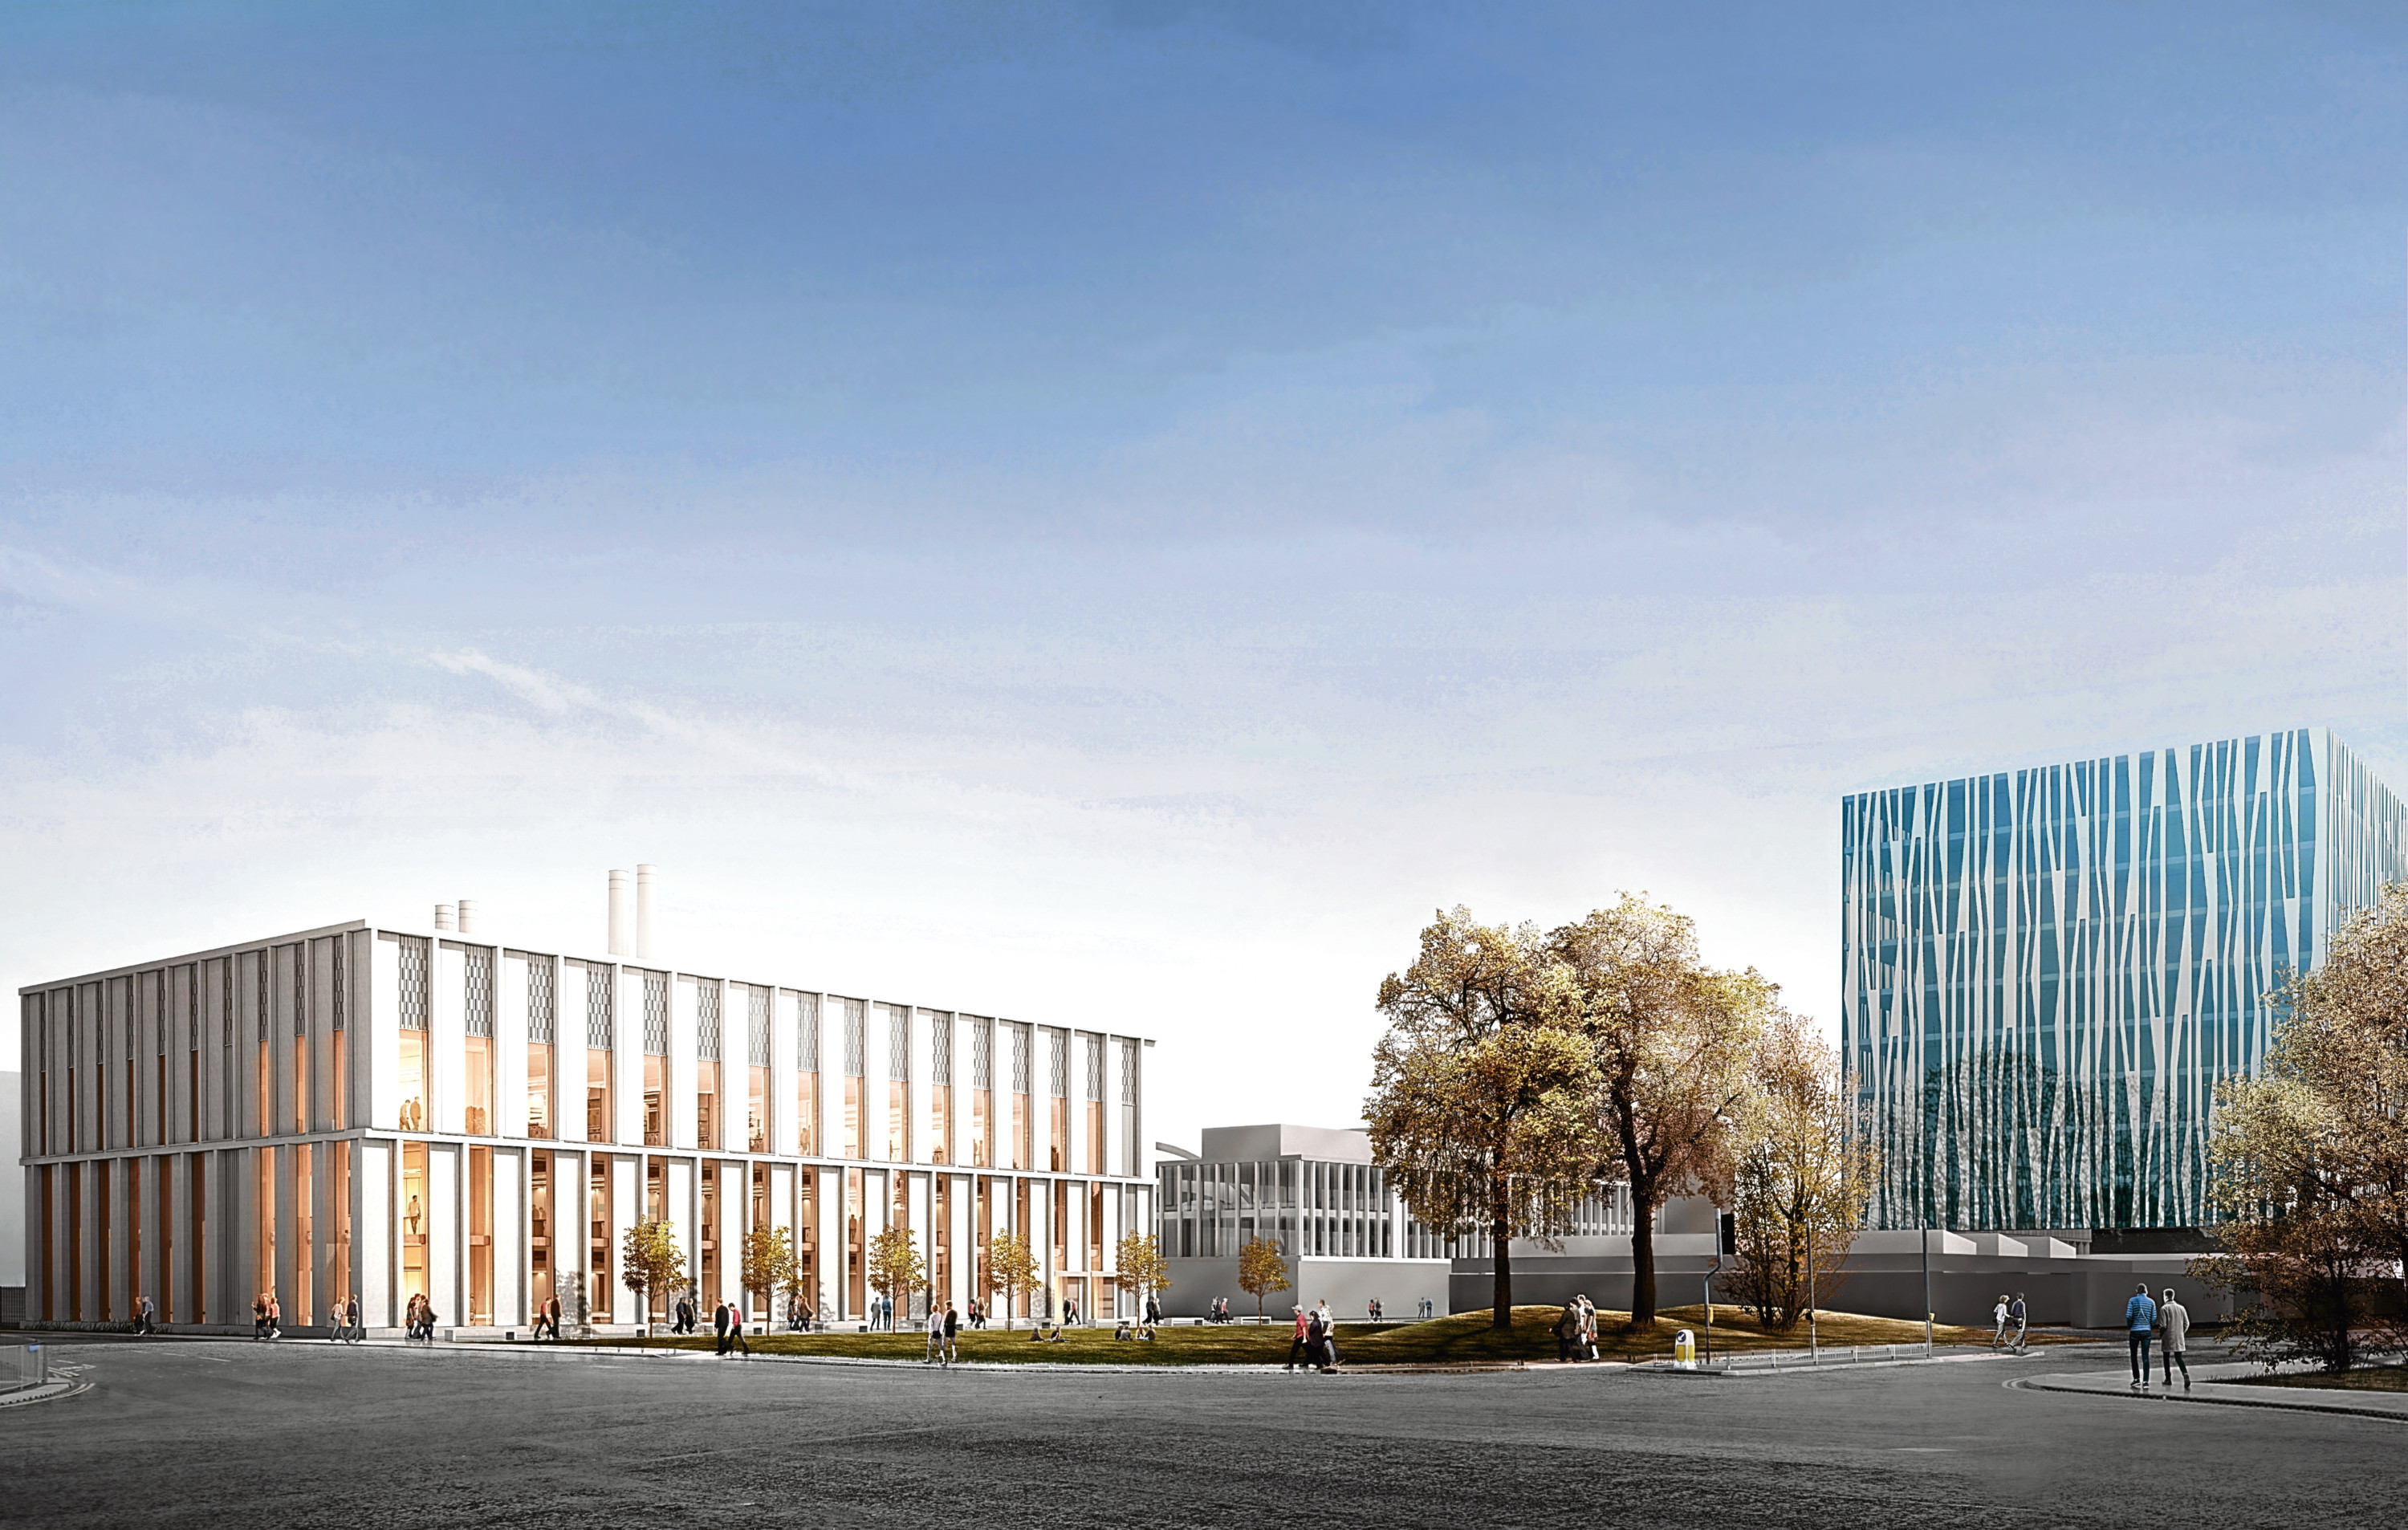 How the new science centre could look